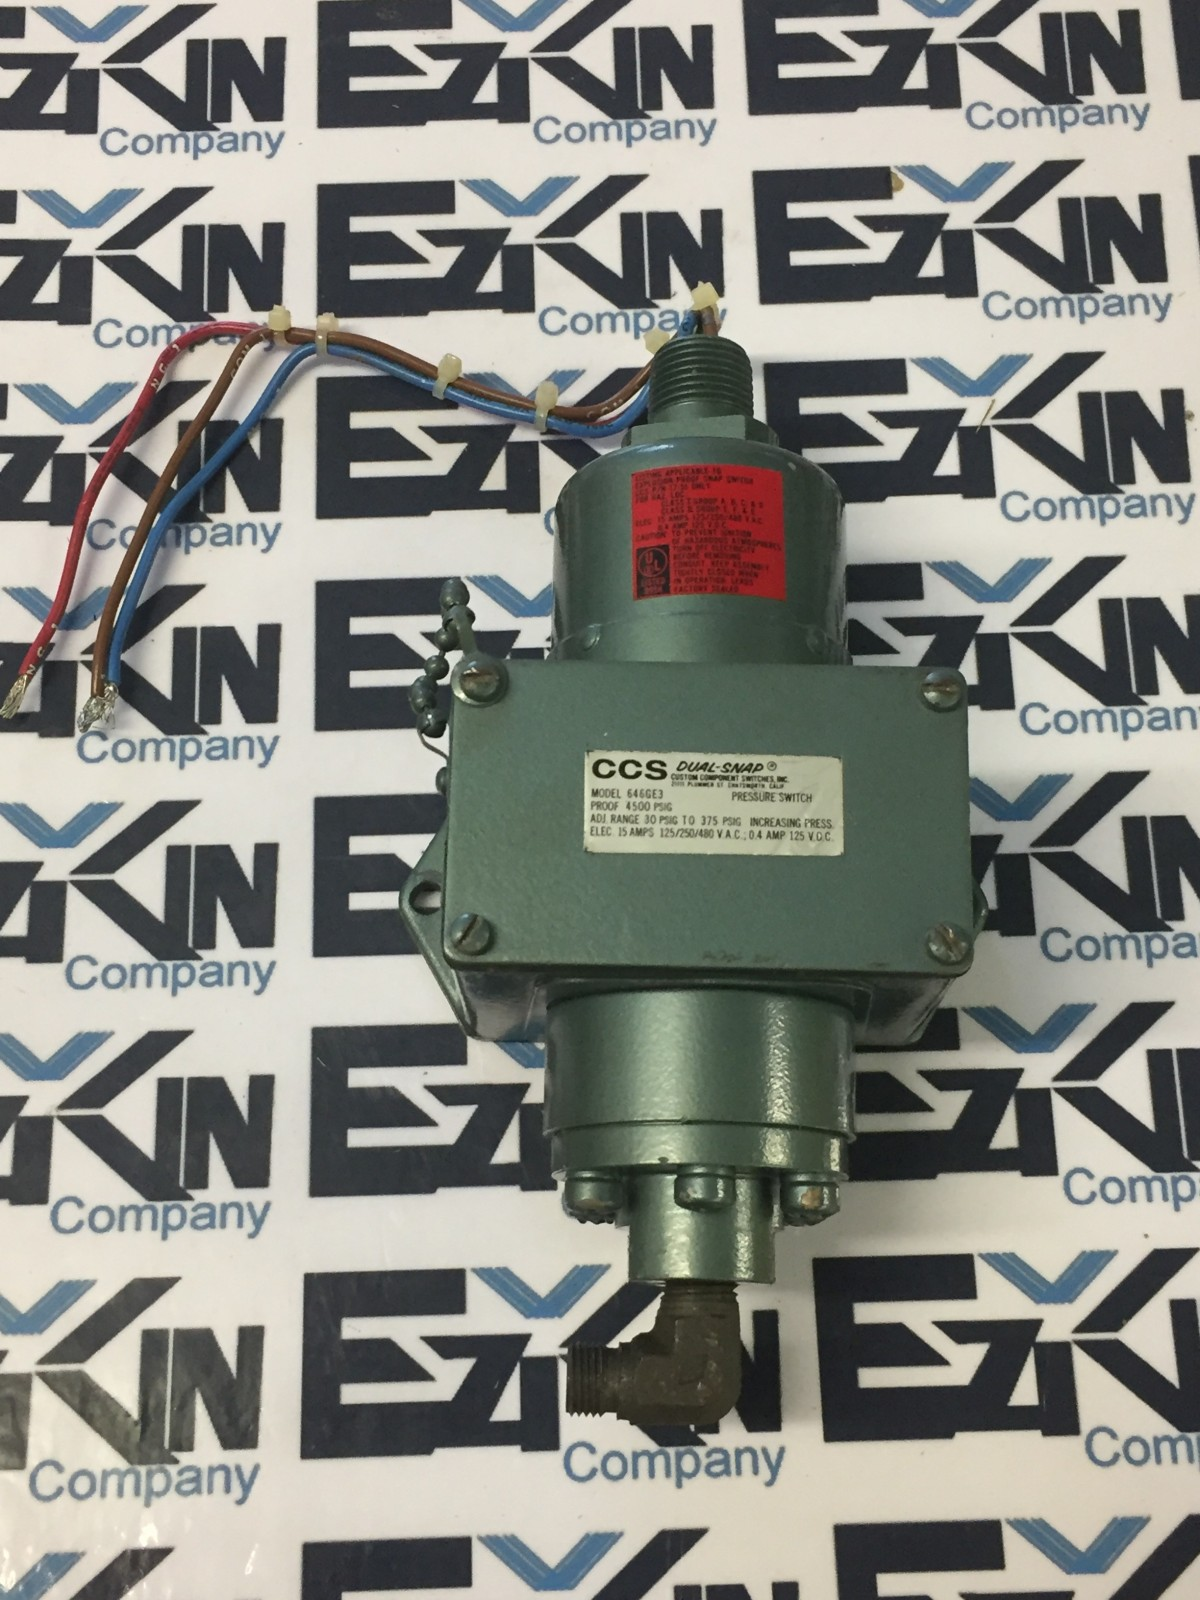 CUSTOM COMPONENT SWITCHES DUAL-SNAP MODEL 646GE3 PRESSURE SWITCH